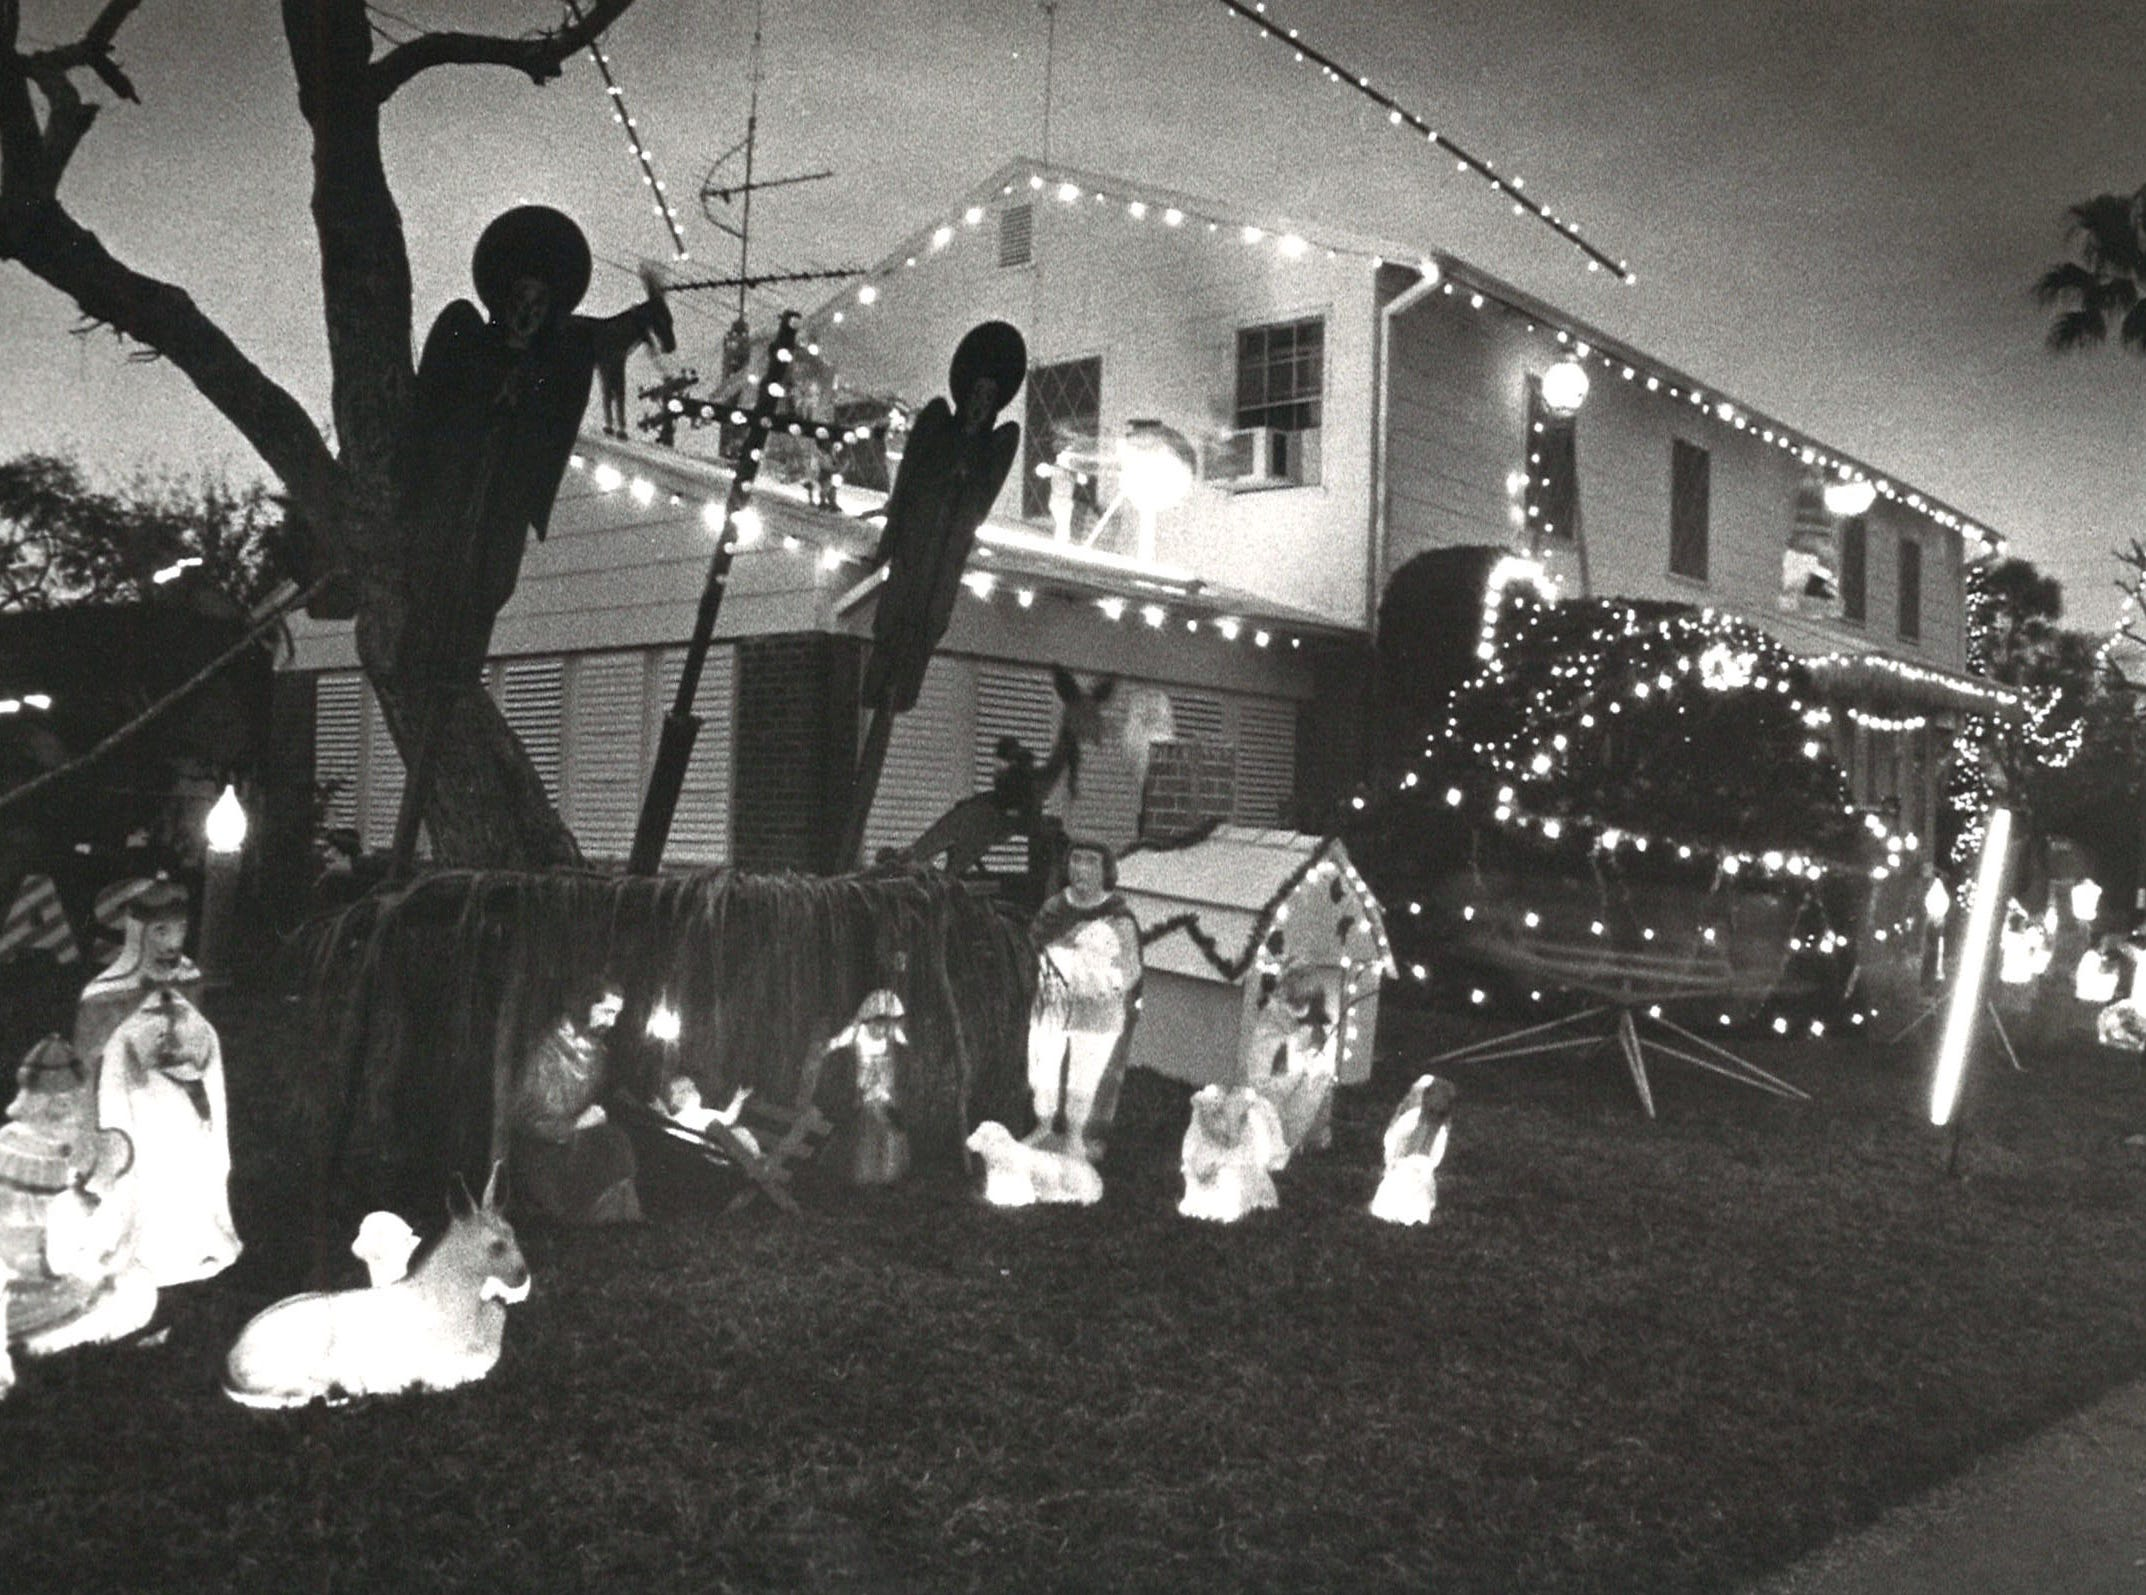 Bill Aldridge decorated his house on the corner of Delaine and Doddridge for more than 30 years. Many of the decorations, seen in this 1980 photo, were built by Alridge, who owned Aldridge TV.